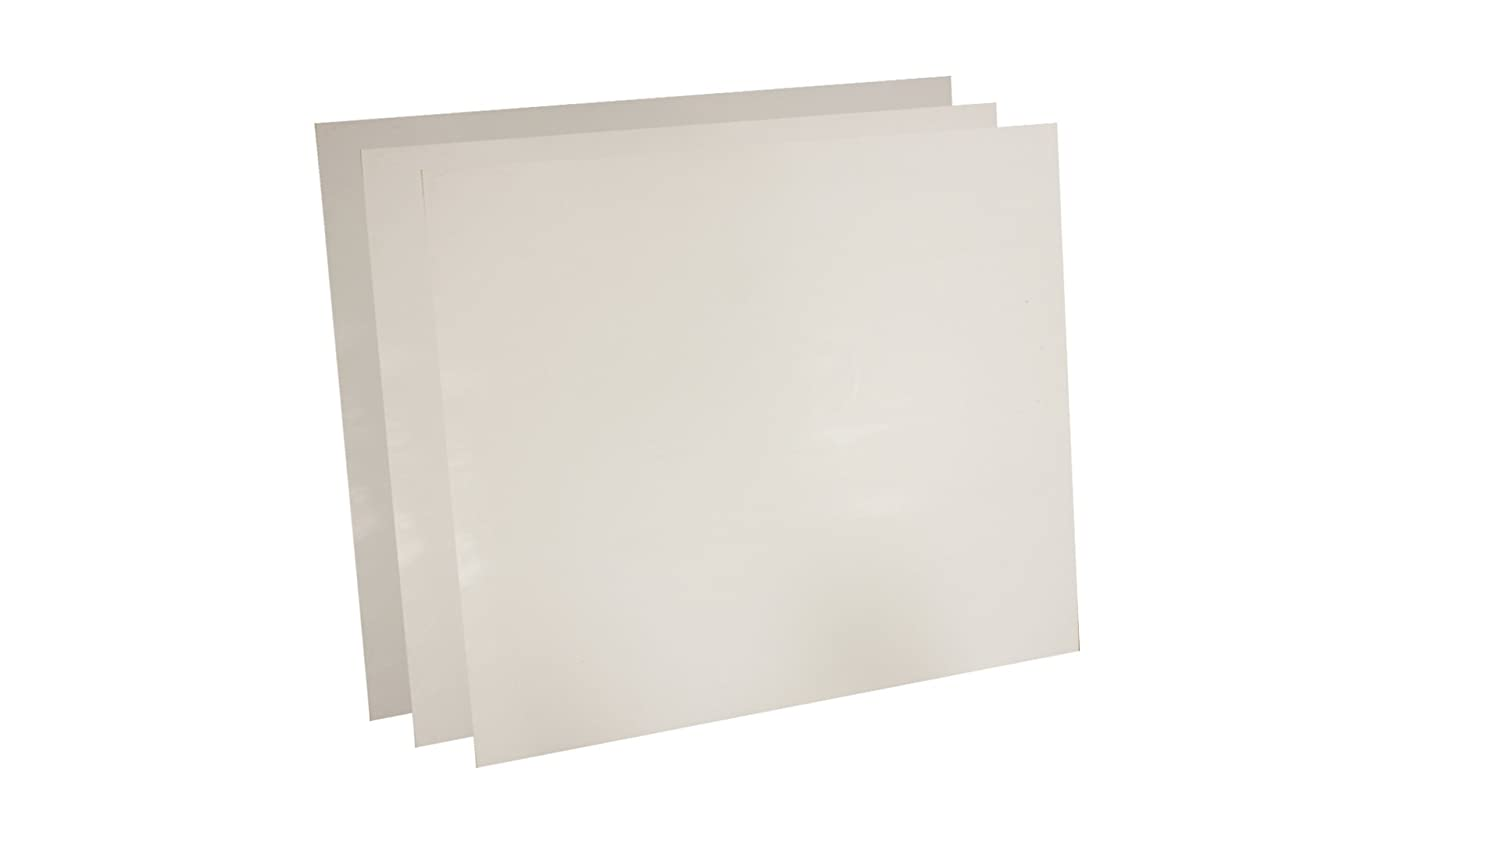 6 x 6 square 3 thicknesses Pack of 3 Supplied by Sur-Seal Inc 3 thicknesses Sterling Seal SSI7530.MD3.6 PTFE Virgin Teflon Gasket Material Pack 1//16 6 x 6 square Pack of 3 1//32 1//32 1//16 1//8 MD of NJ 1//8 MD